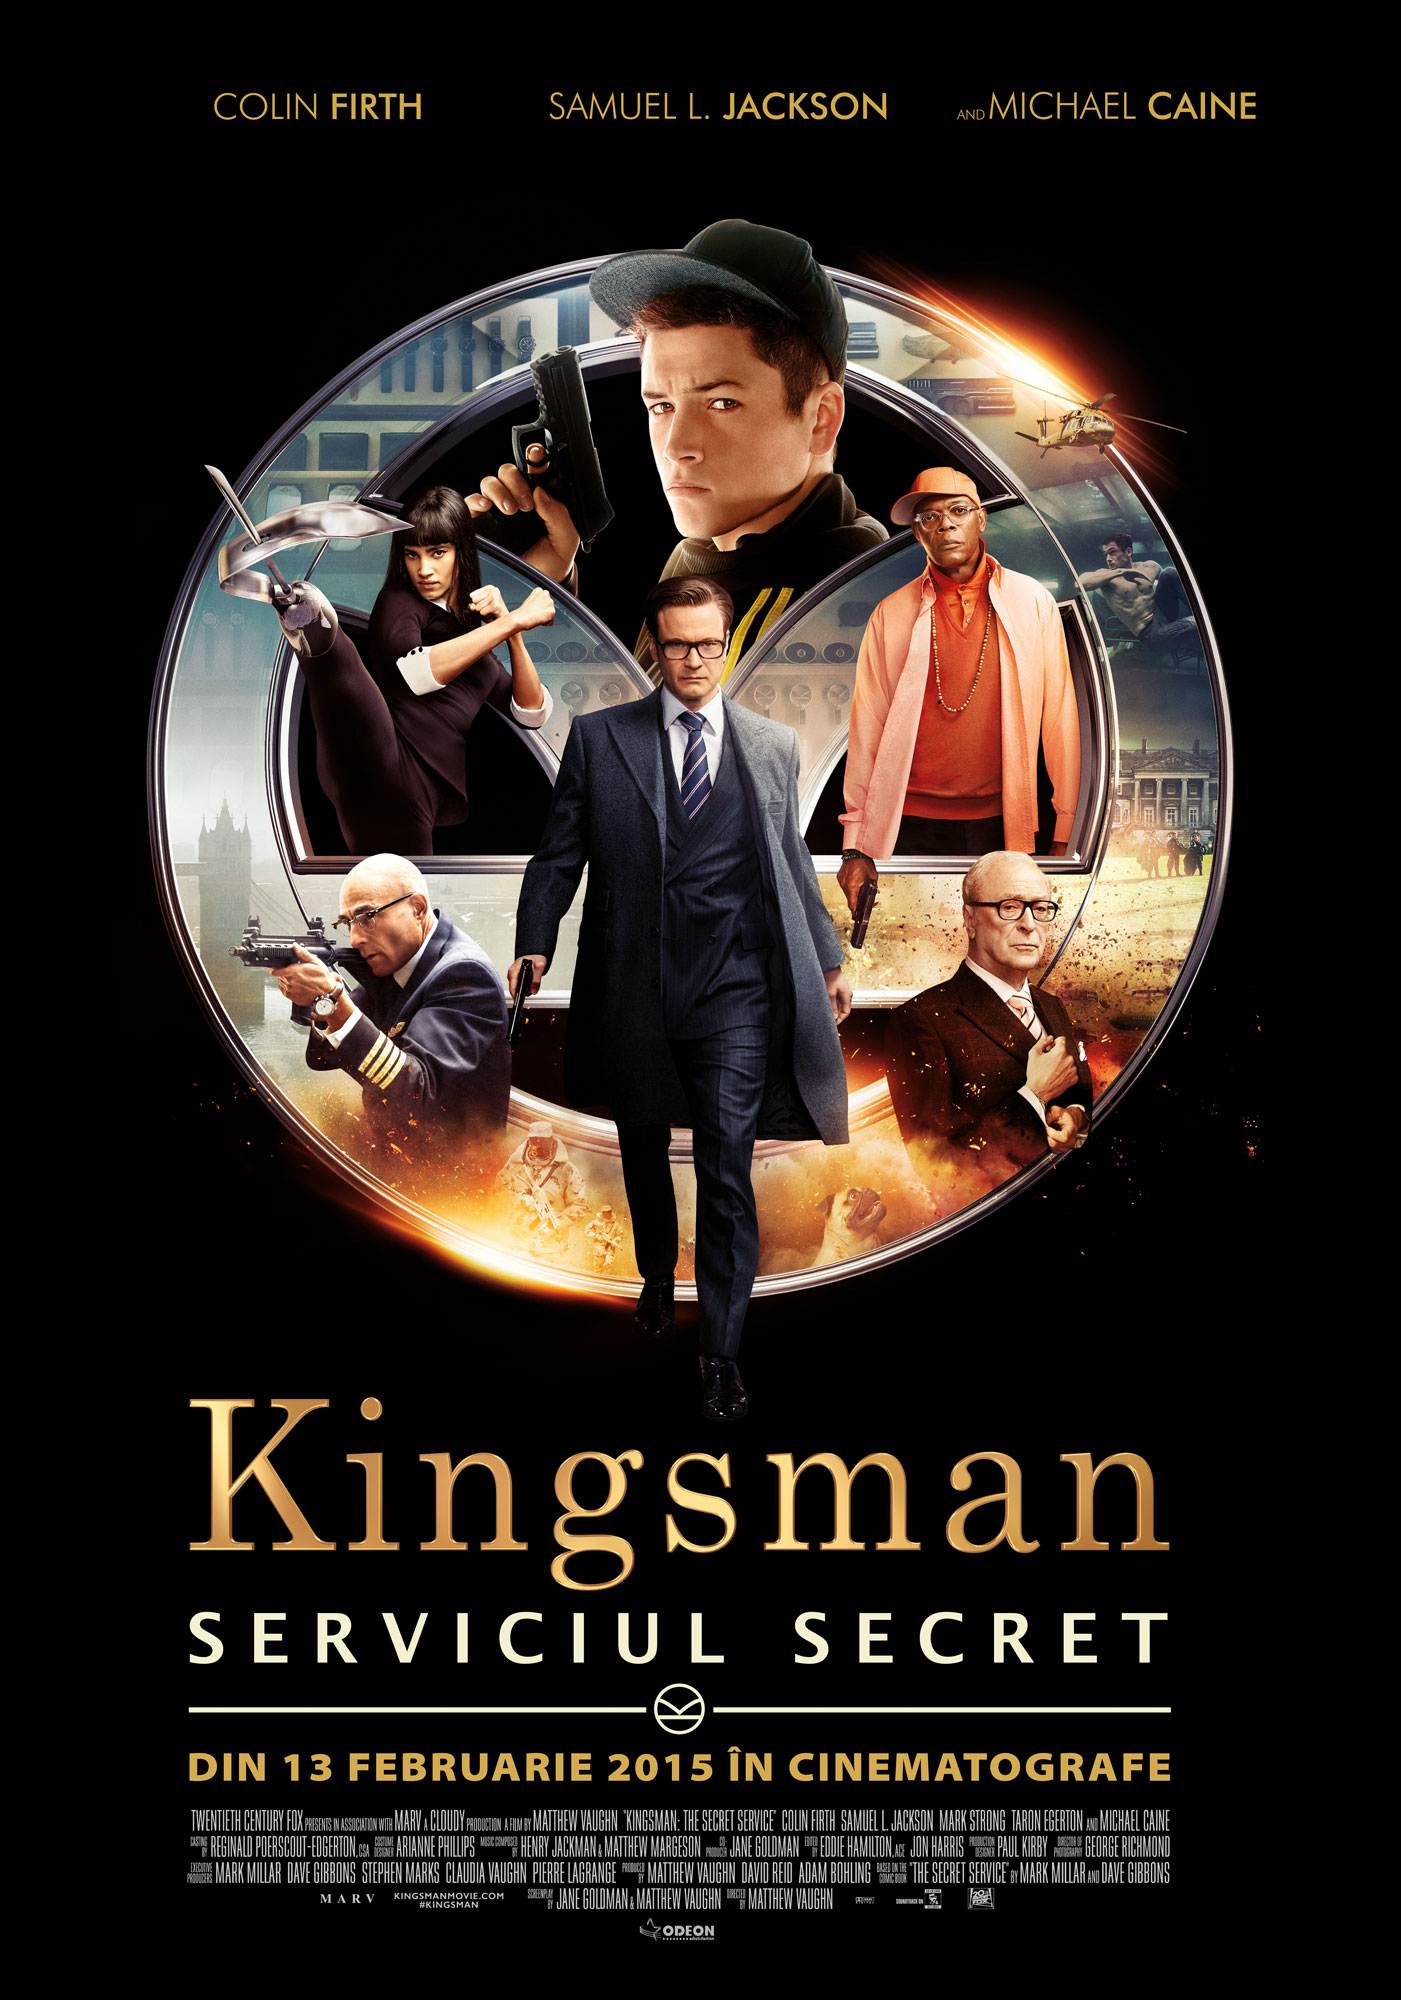 Kingsman: Serviciul Secret / Kingsman: The Secret Service (Premiera)